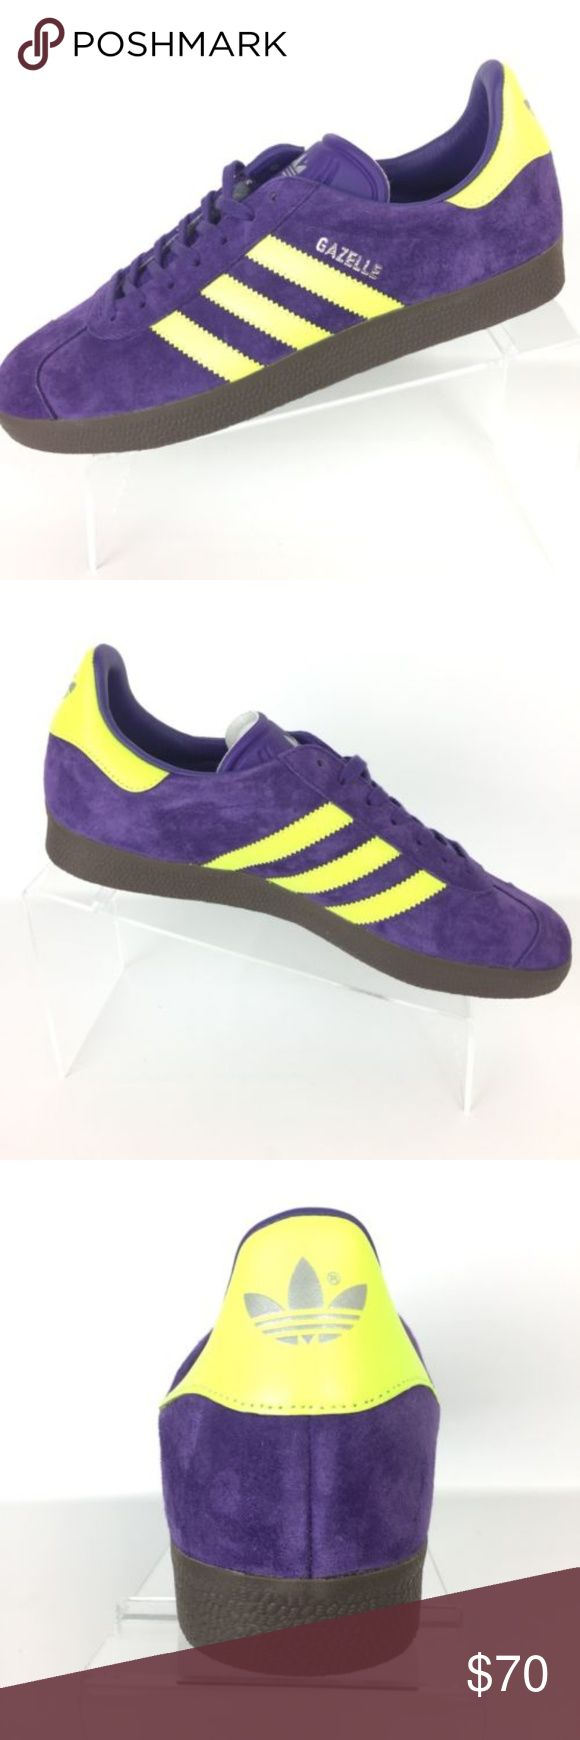 Adidas Originals Gazelle Shoes Adidas Originals Gazelle Shoes Men's Size: 9.5 Purple with Neon Yellow accents Brand new without box. s3 adidas Shoes Sneakers